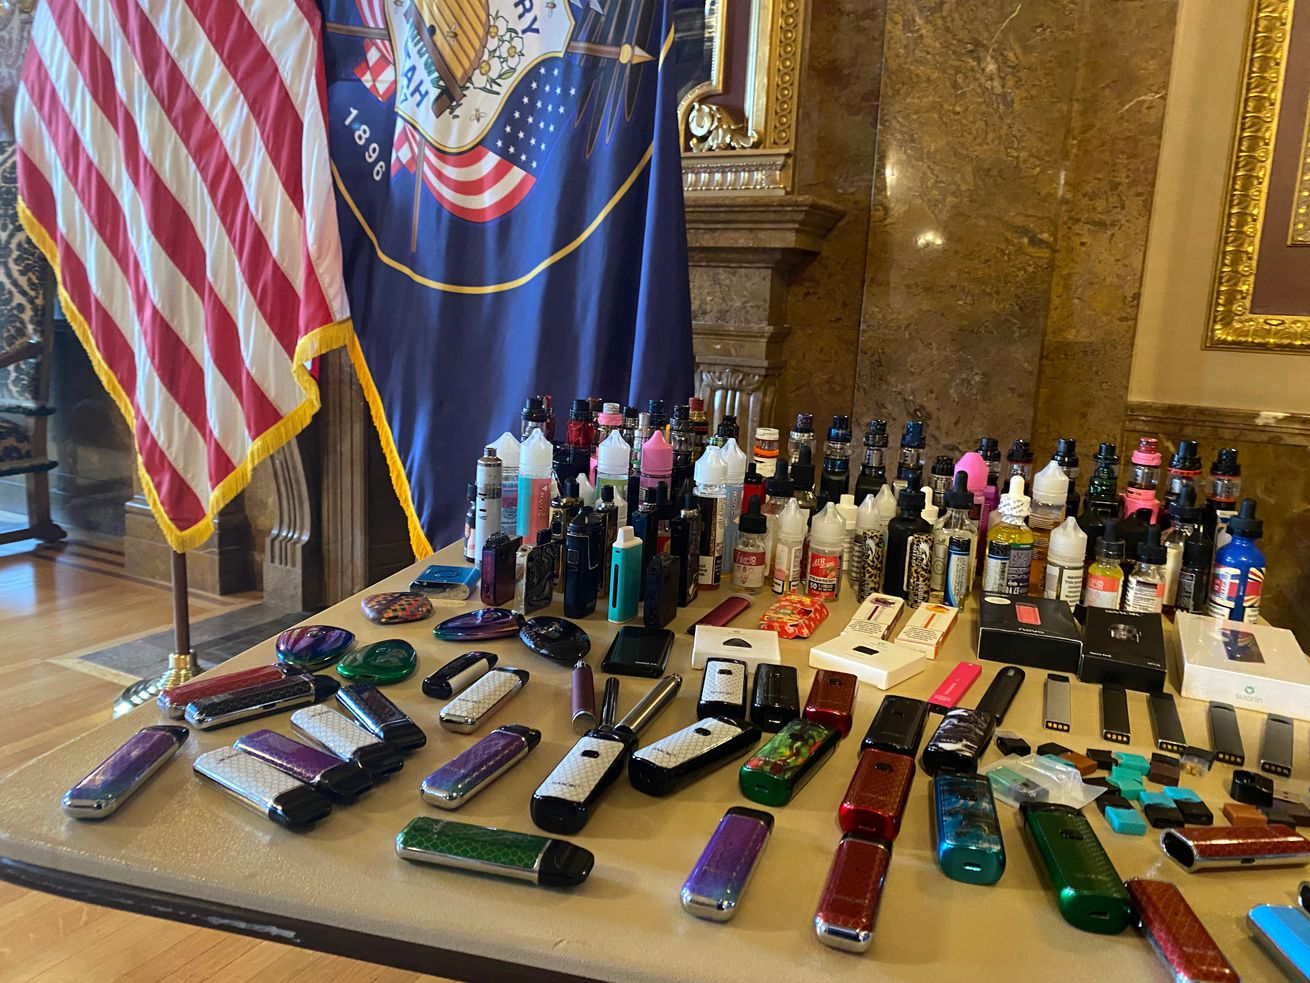 Electronic cigarette devices and cartridges are displayed during a press conference about vaping at the Capitol in Salt Lake City on Wednesday,Jan. 29, 2020.